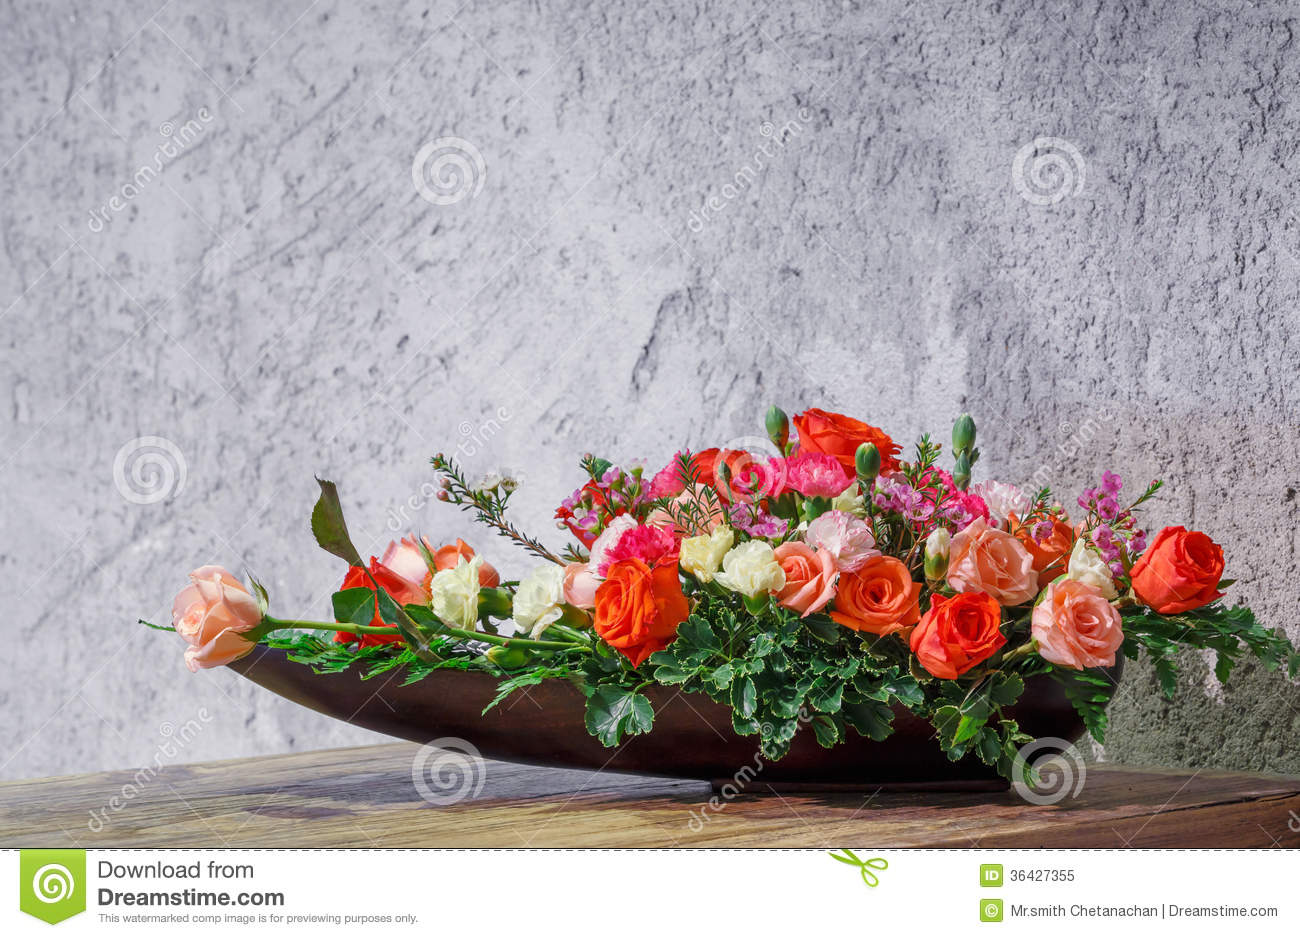 Flower Arrangement In Wooden Tray Royalty Free Stock Photo Image 36427355